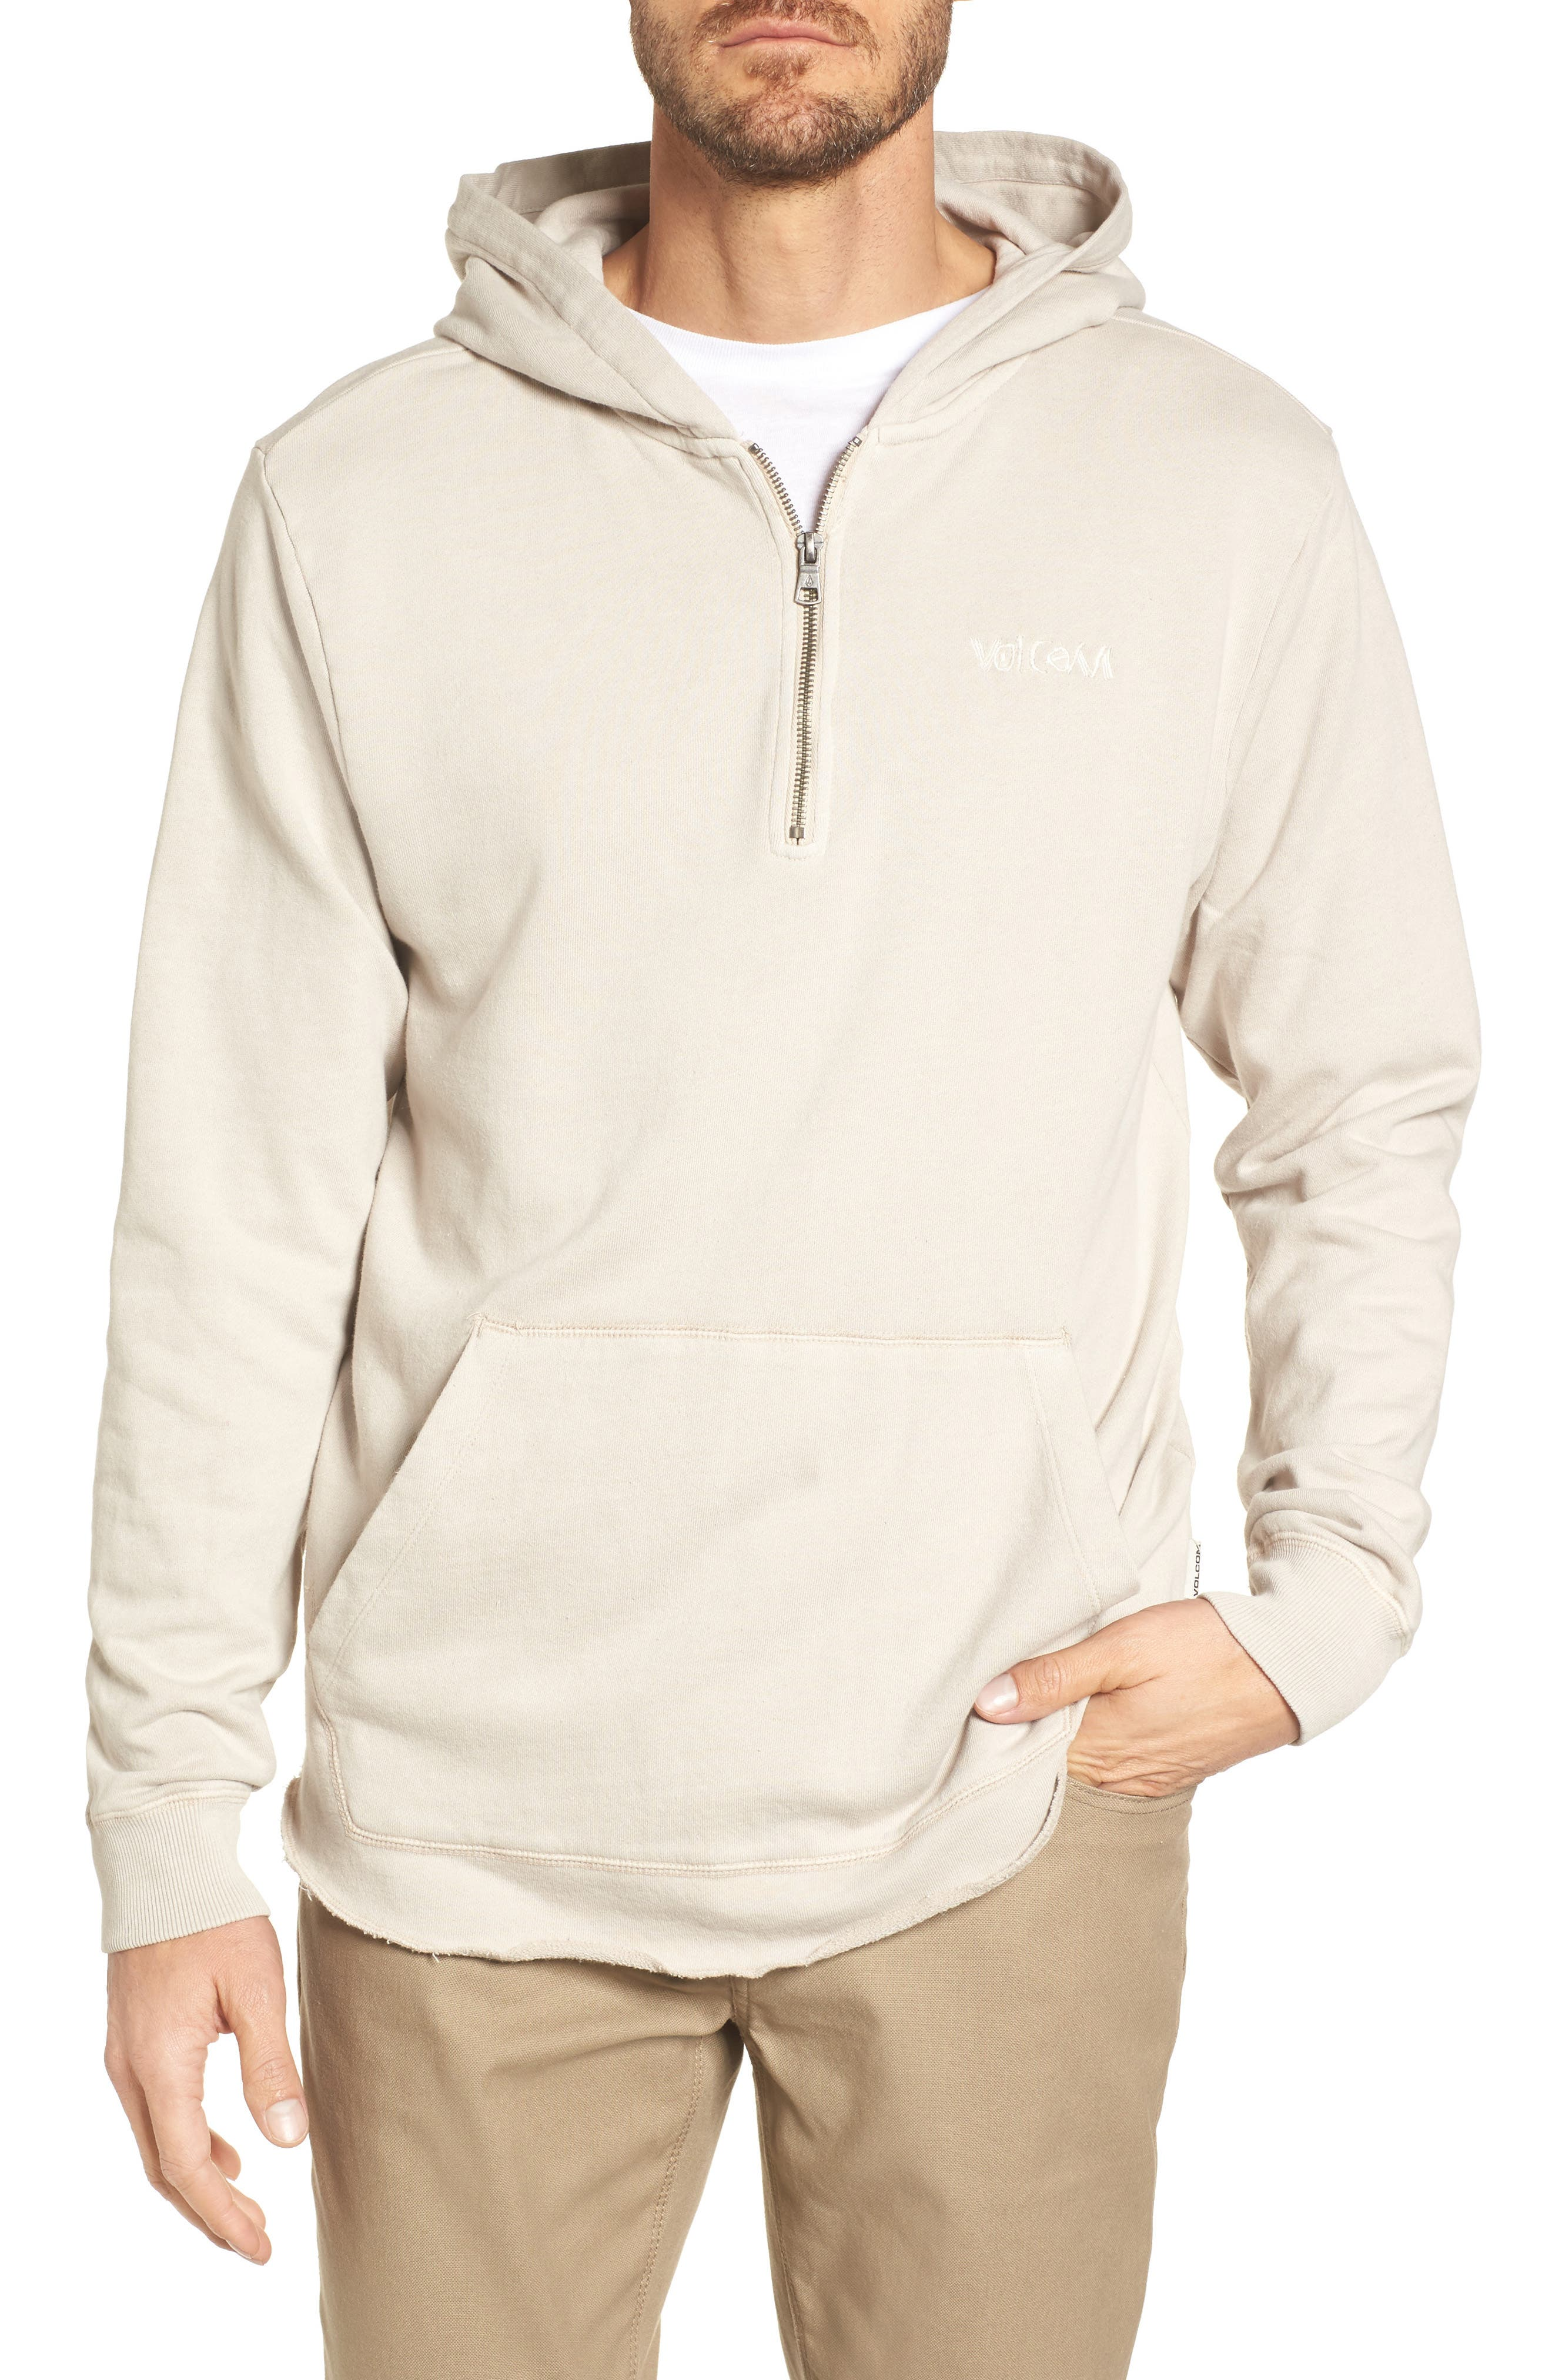 Cassette Embroidered Half Zip Hoodie,                             Main thumbnail 1, color,                             Beige